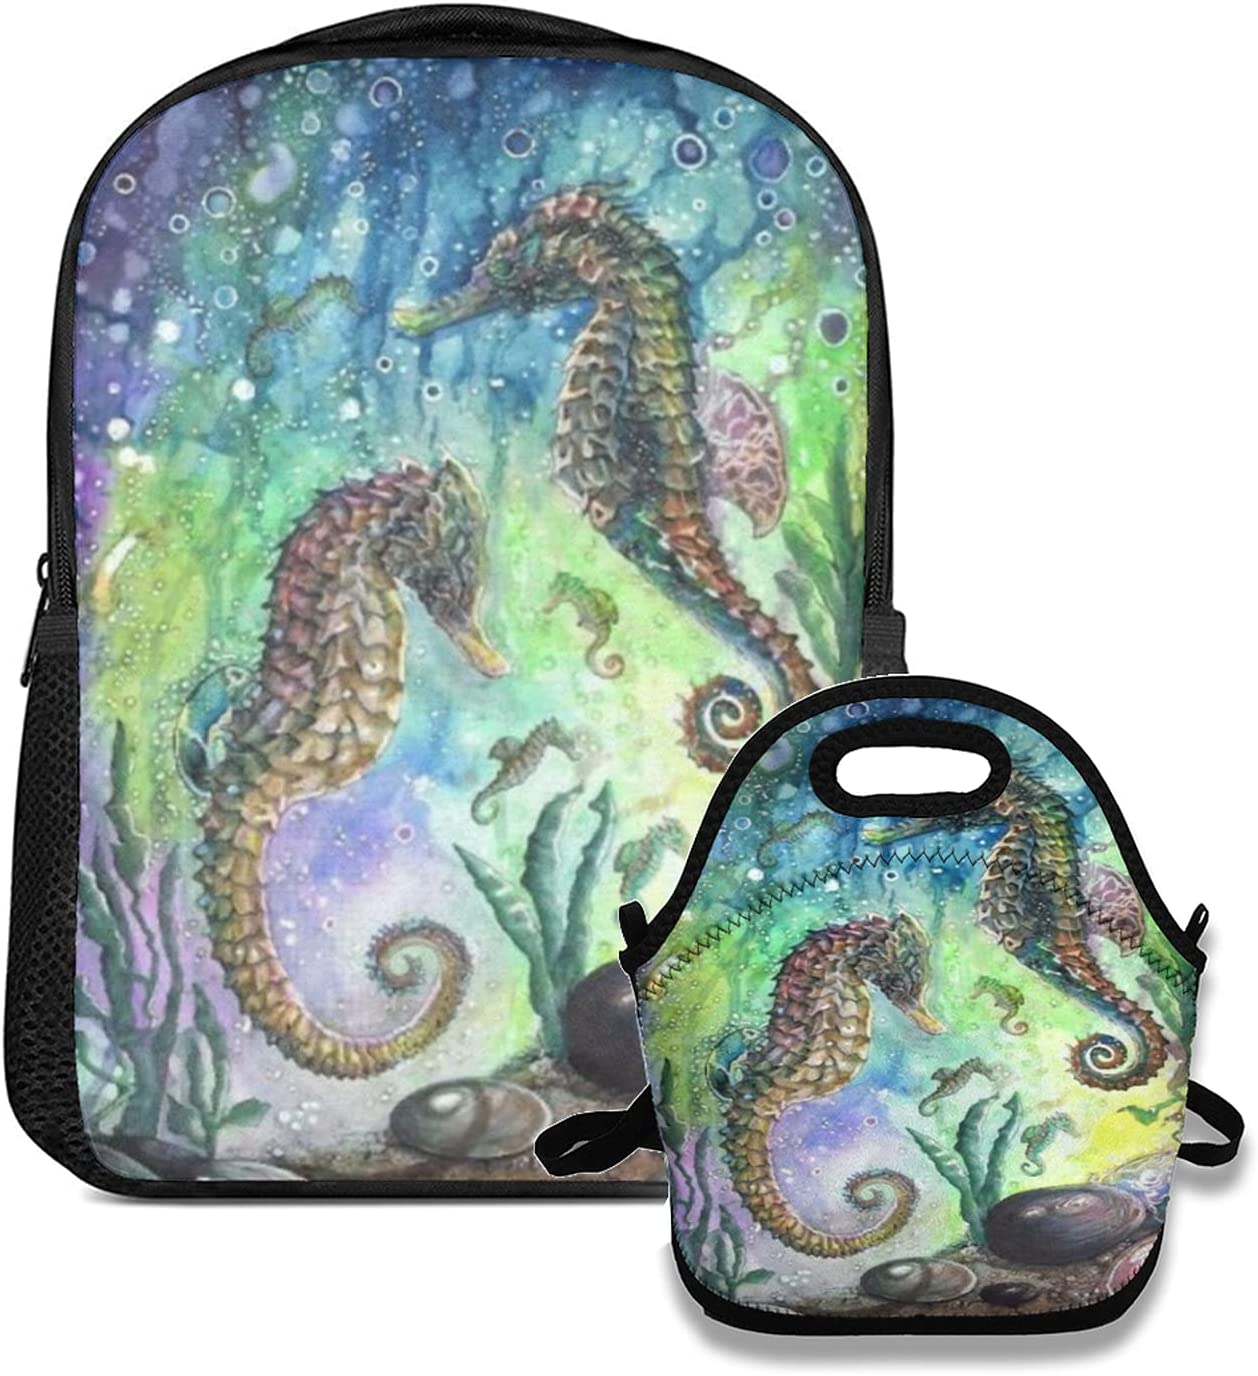 backpack and lunch bag set OFFicial store Set Water For Sealife Under Seahorse half